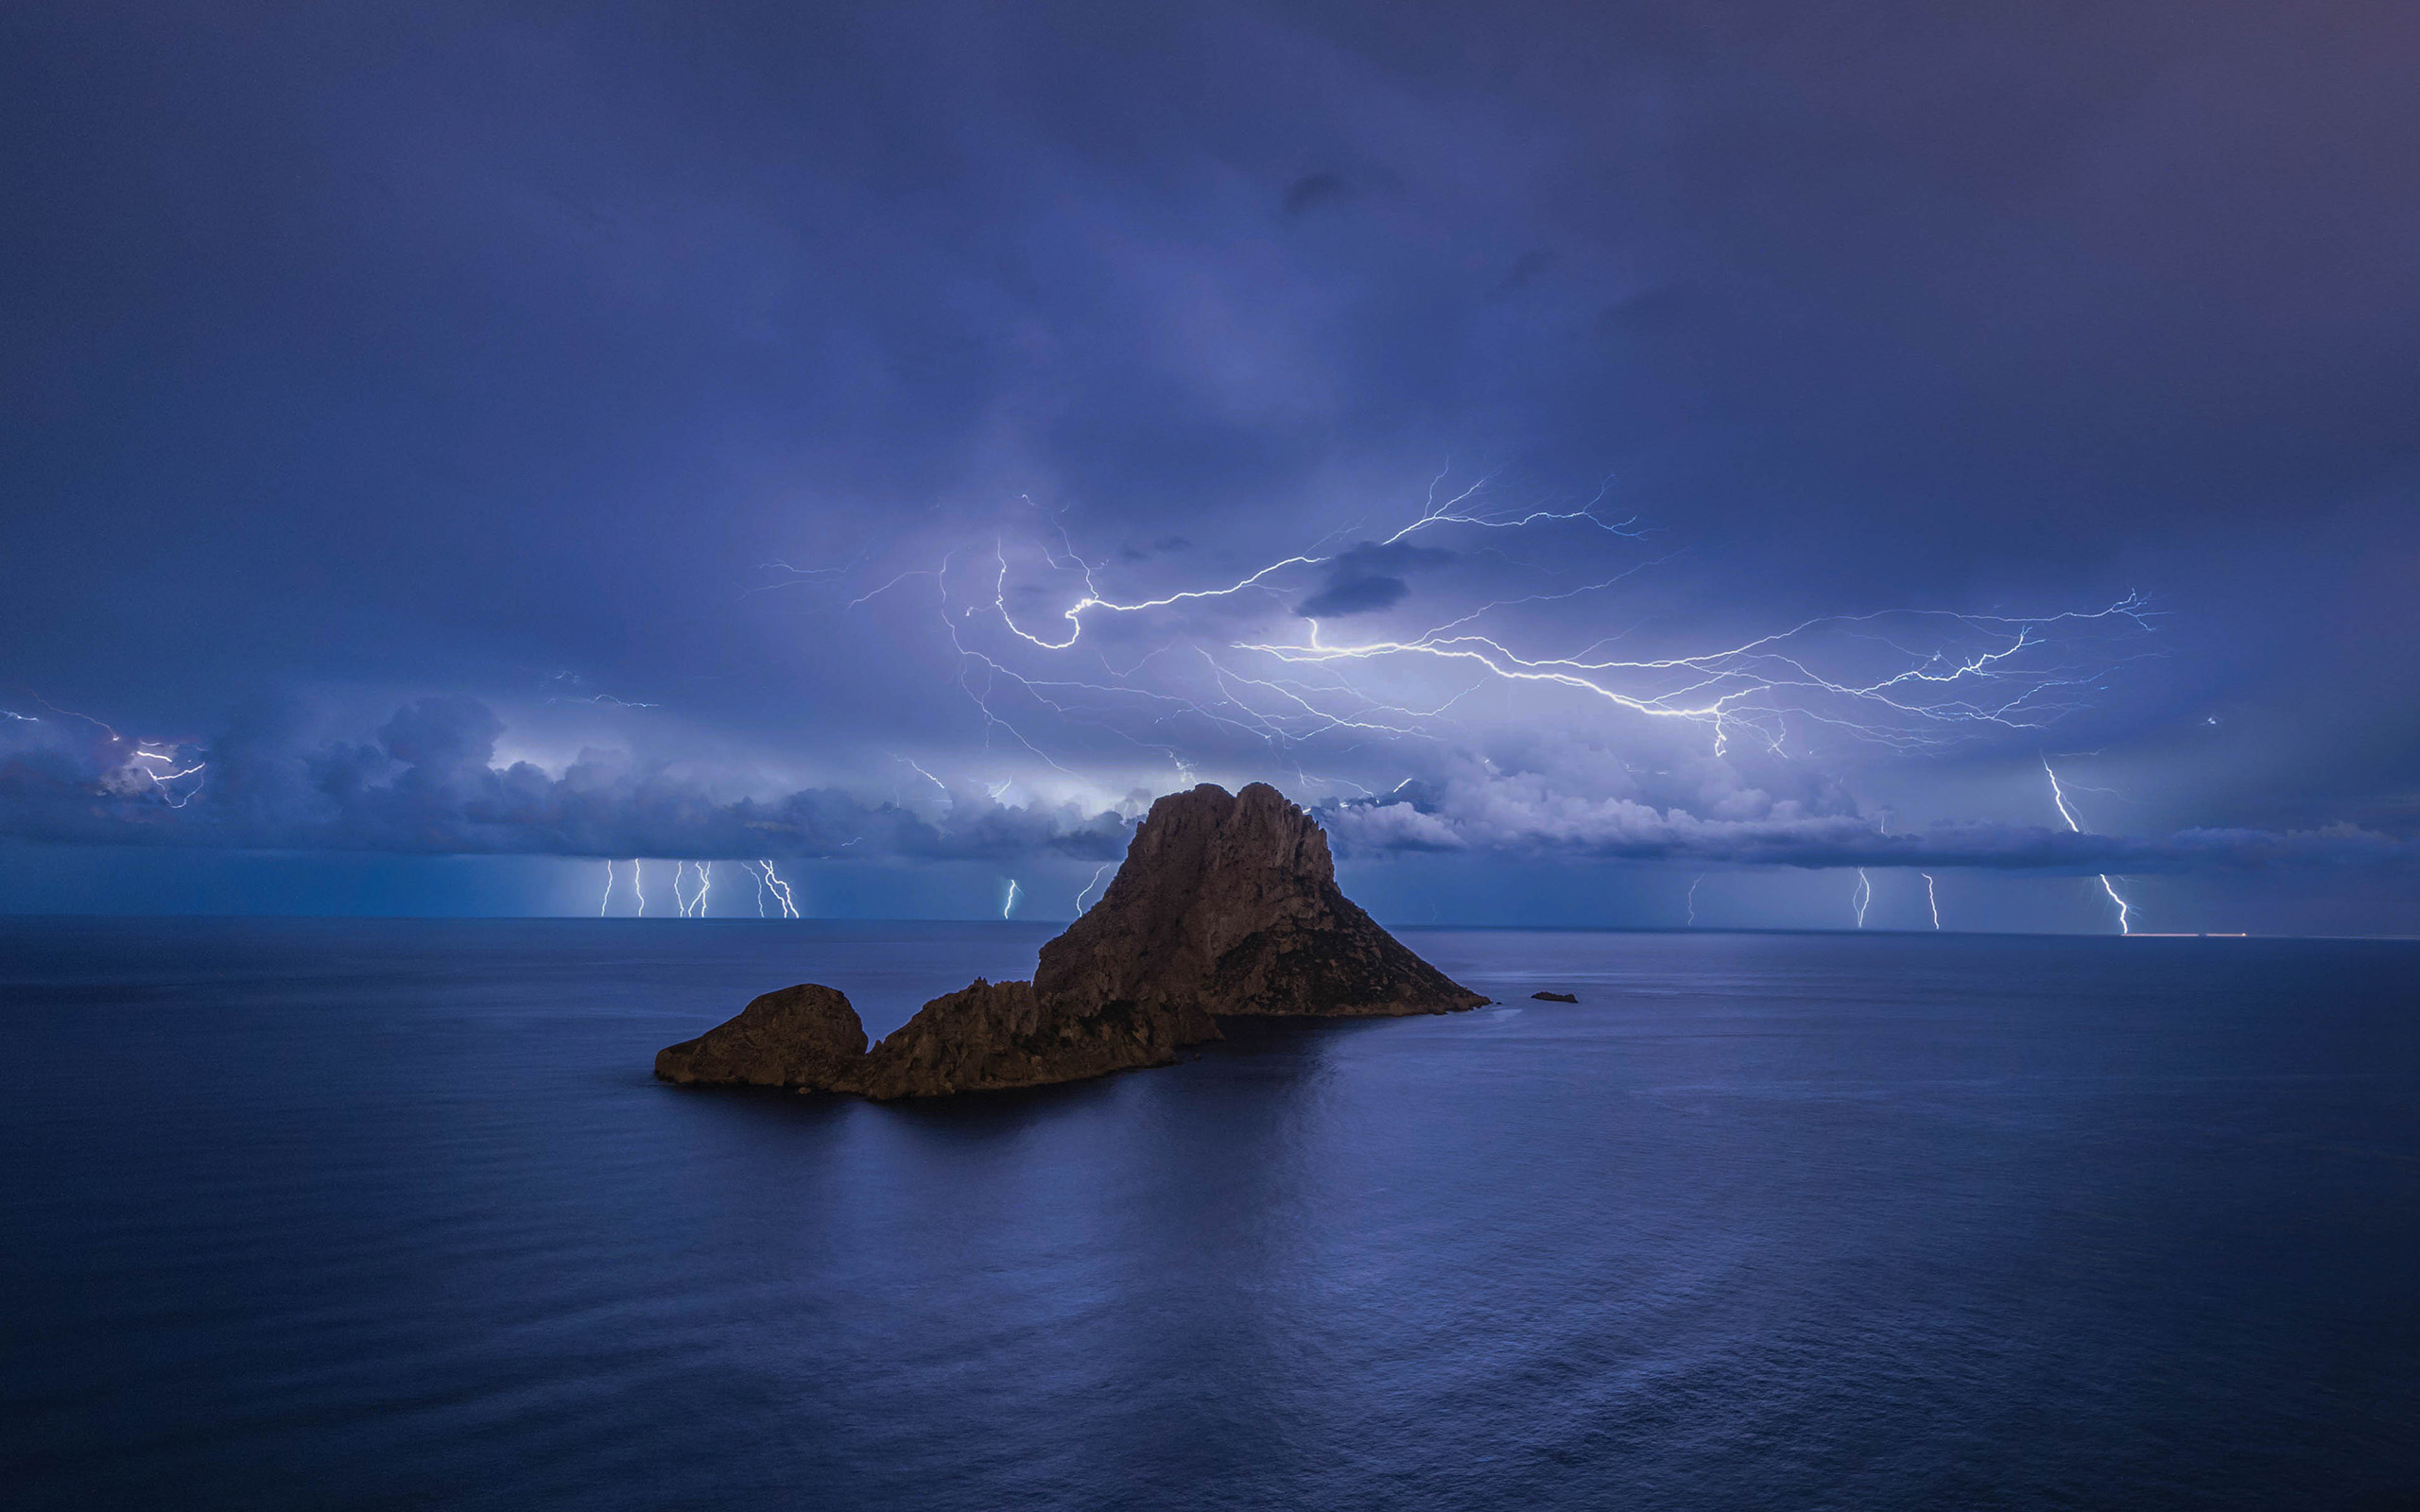 364 lightning hd wallpapers | background images - wallpaper abyss